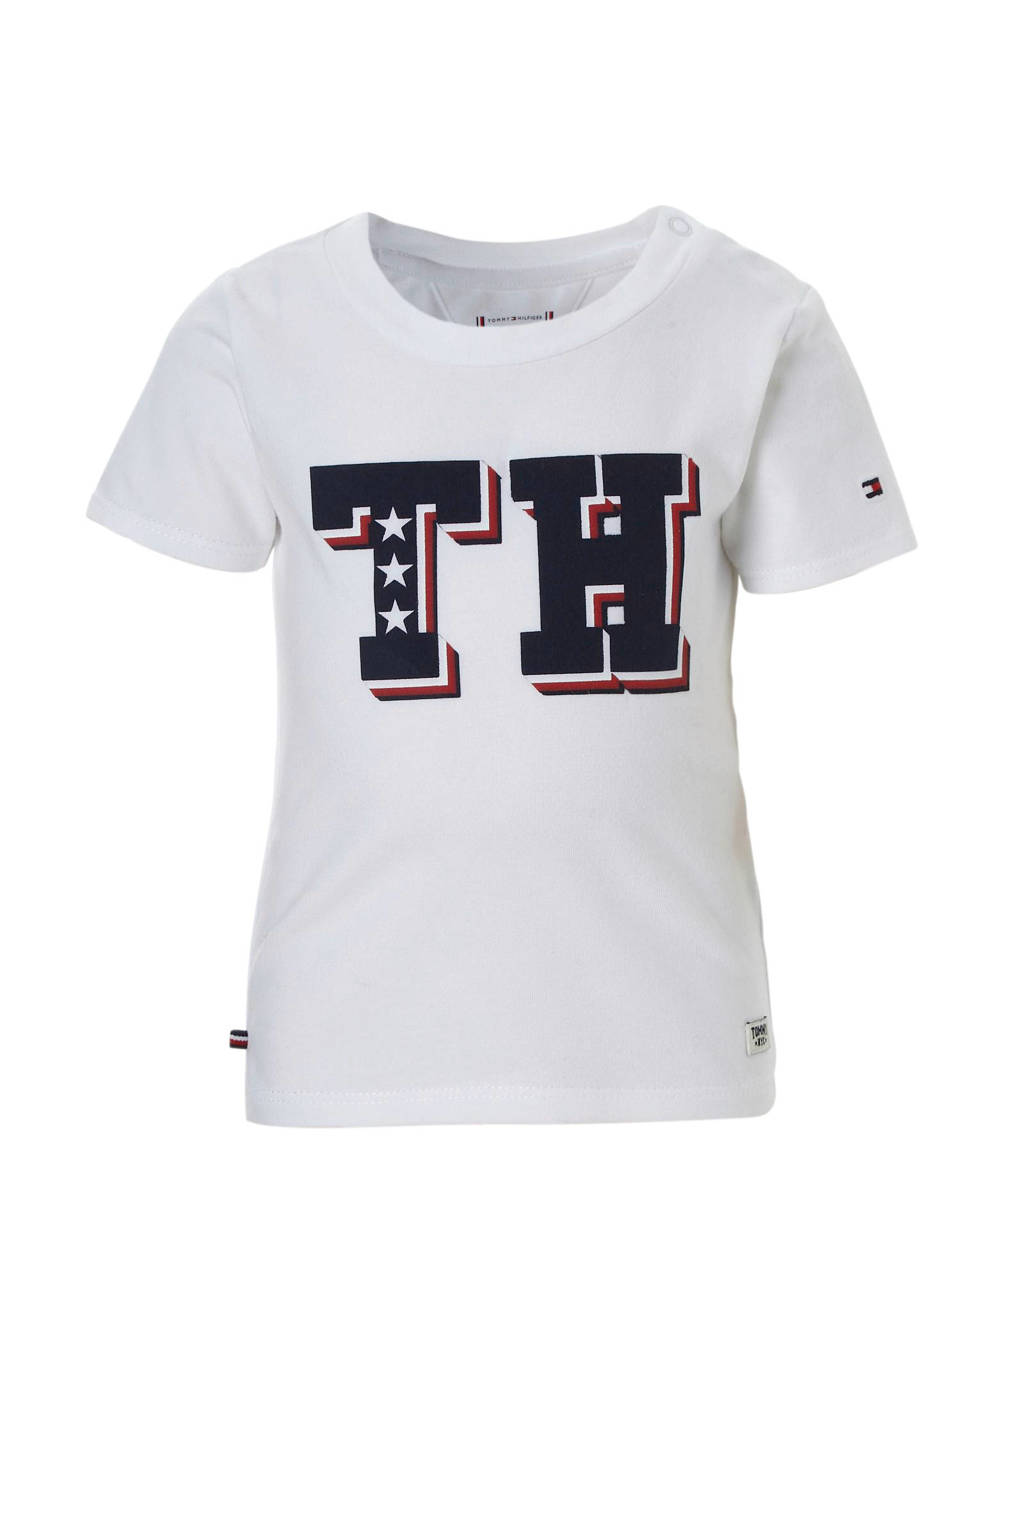 Tommy Hilfiger baby T-shirt met logo wit, Wit